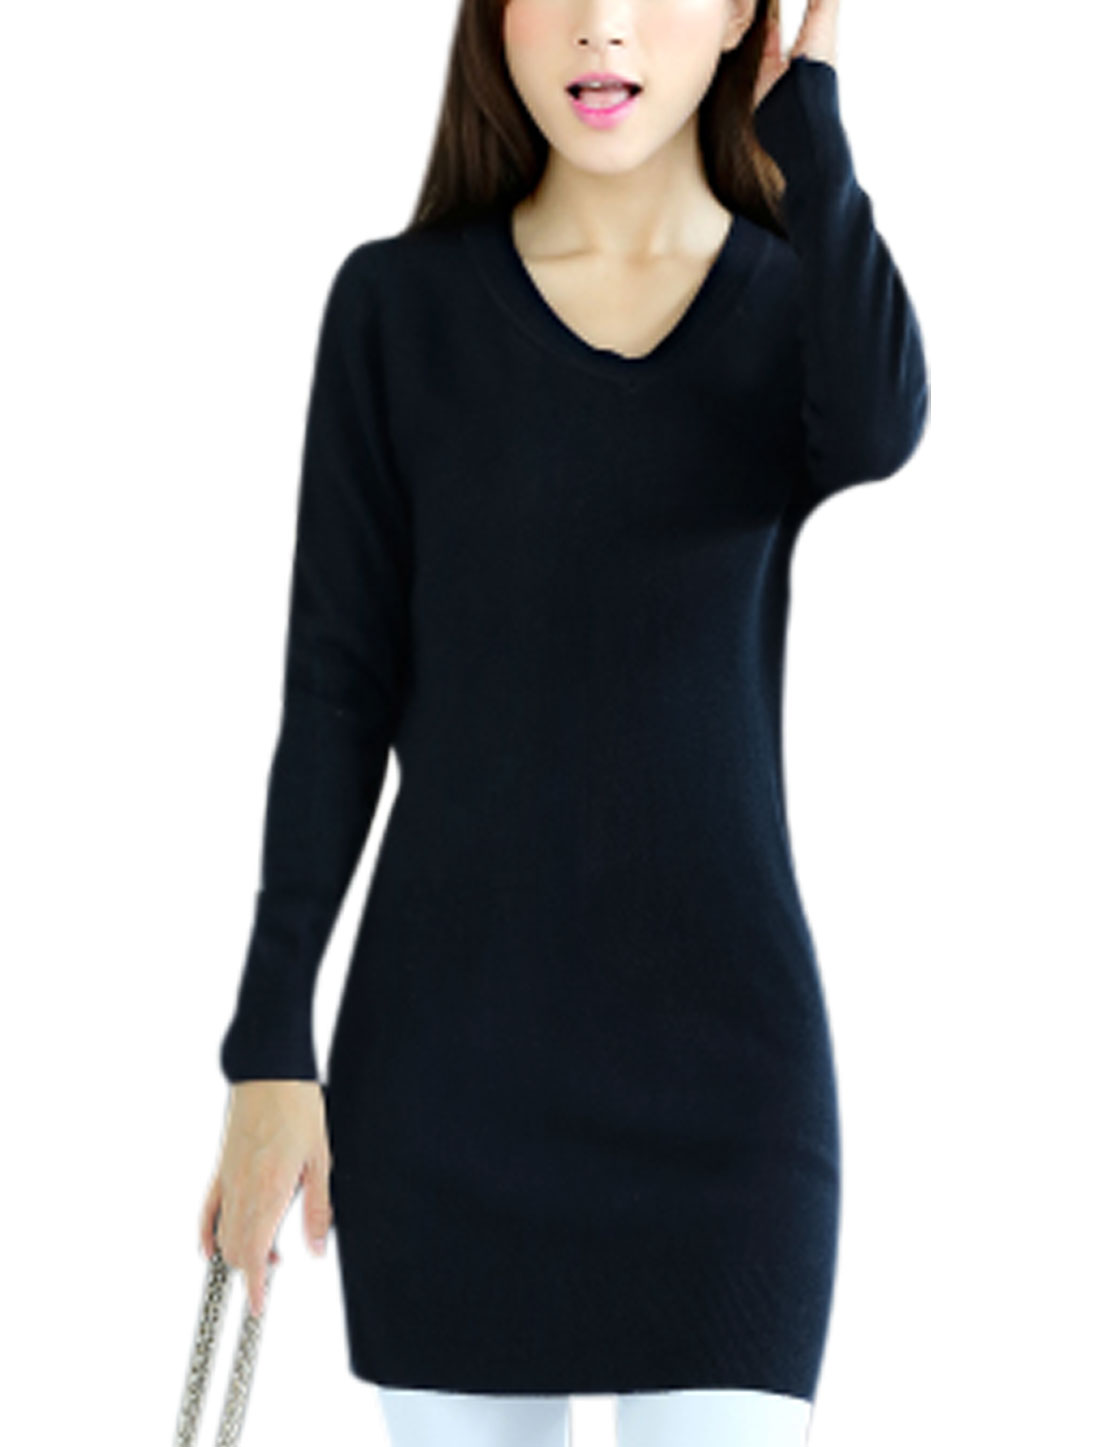 Leisure Design Long Sleeve Slim Cut Navy Blue Tunic Knit Shirt for Lady XS